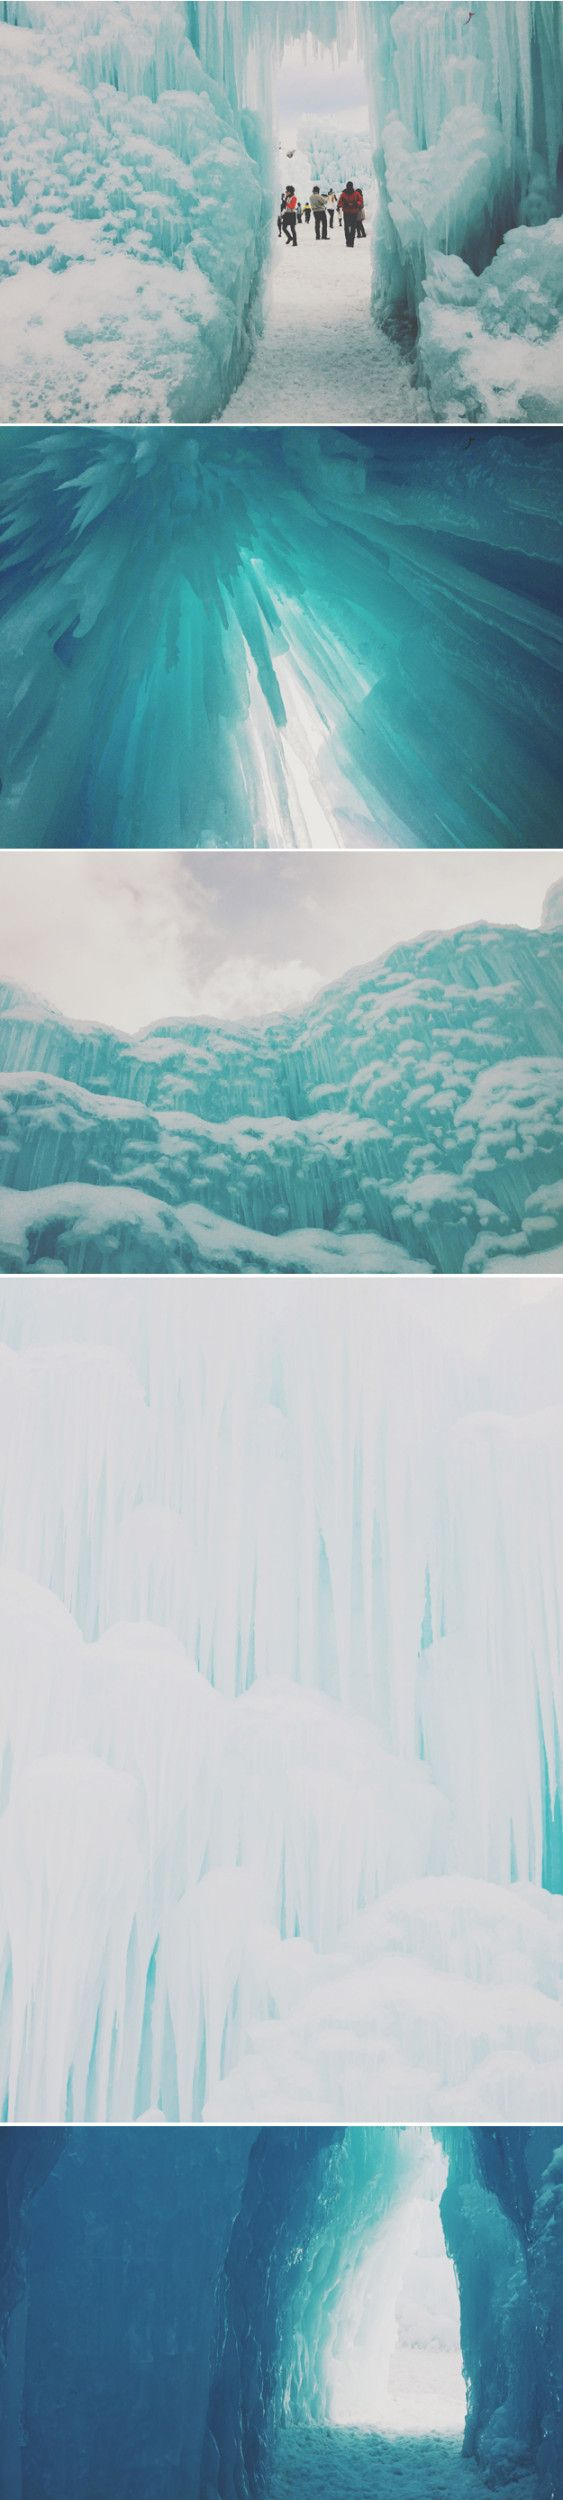 Midway Ice Castles in Daylight | Sycamore Street Press